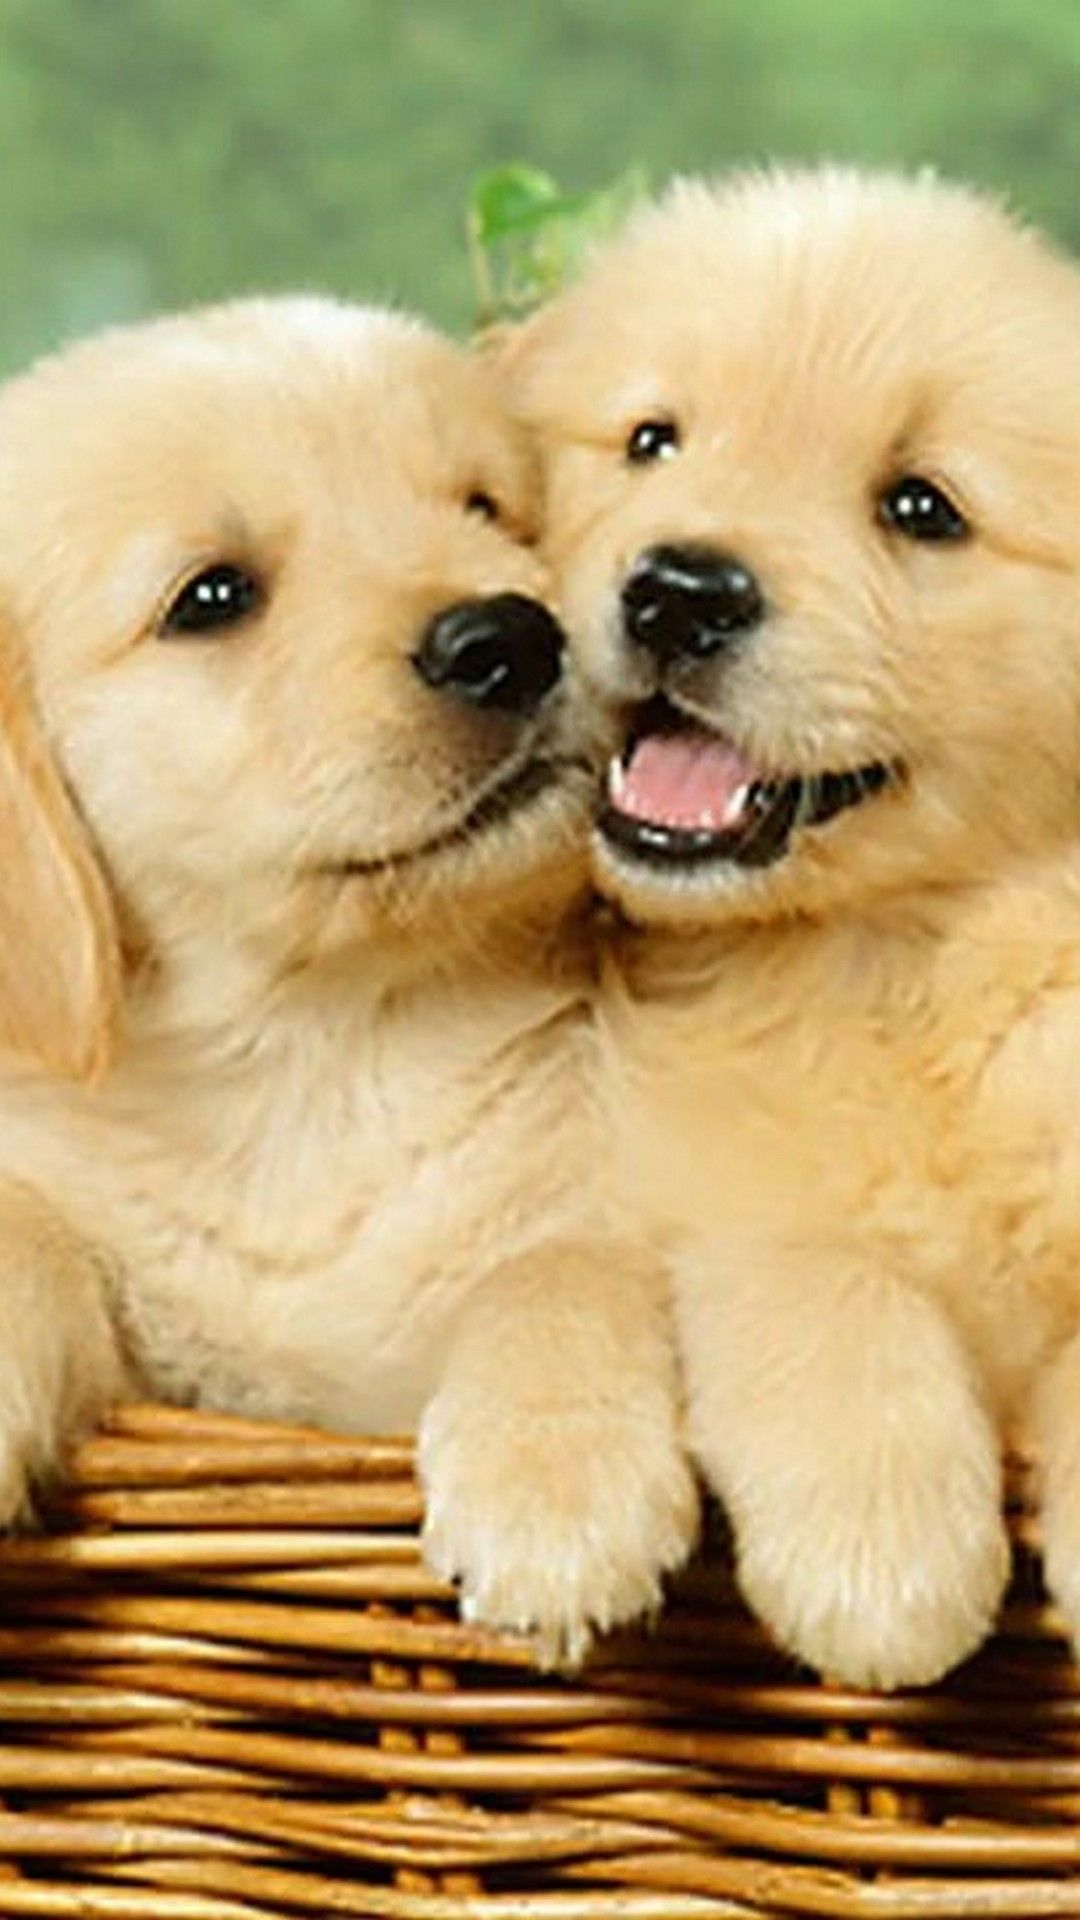 Wallpaper Cute Puppies IPhone